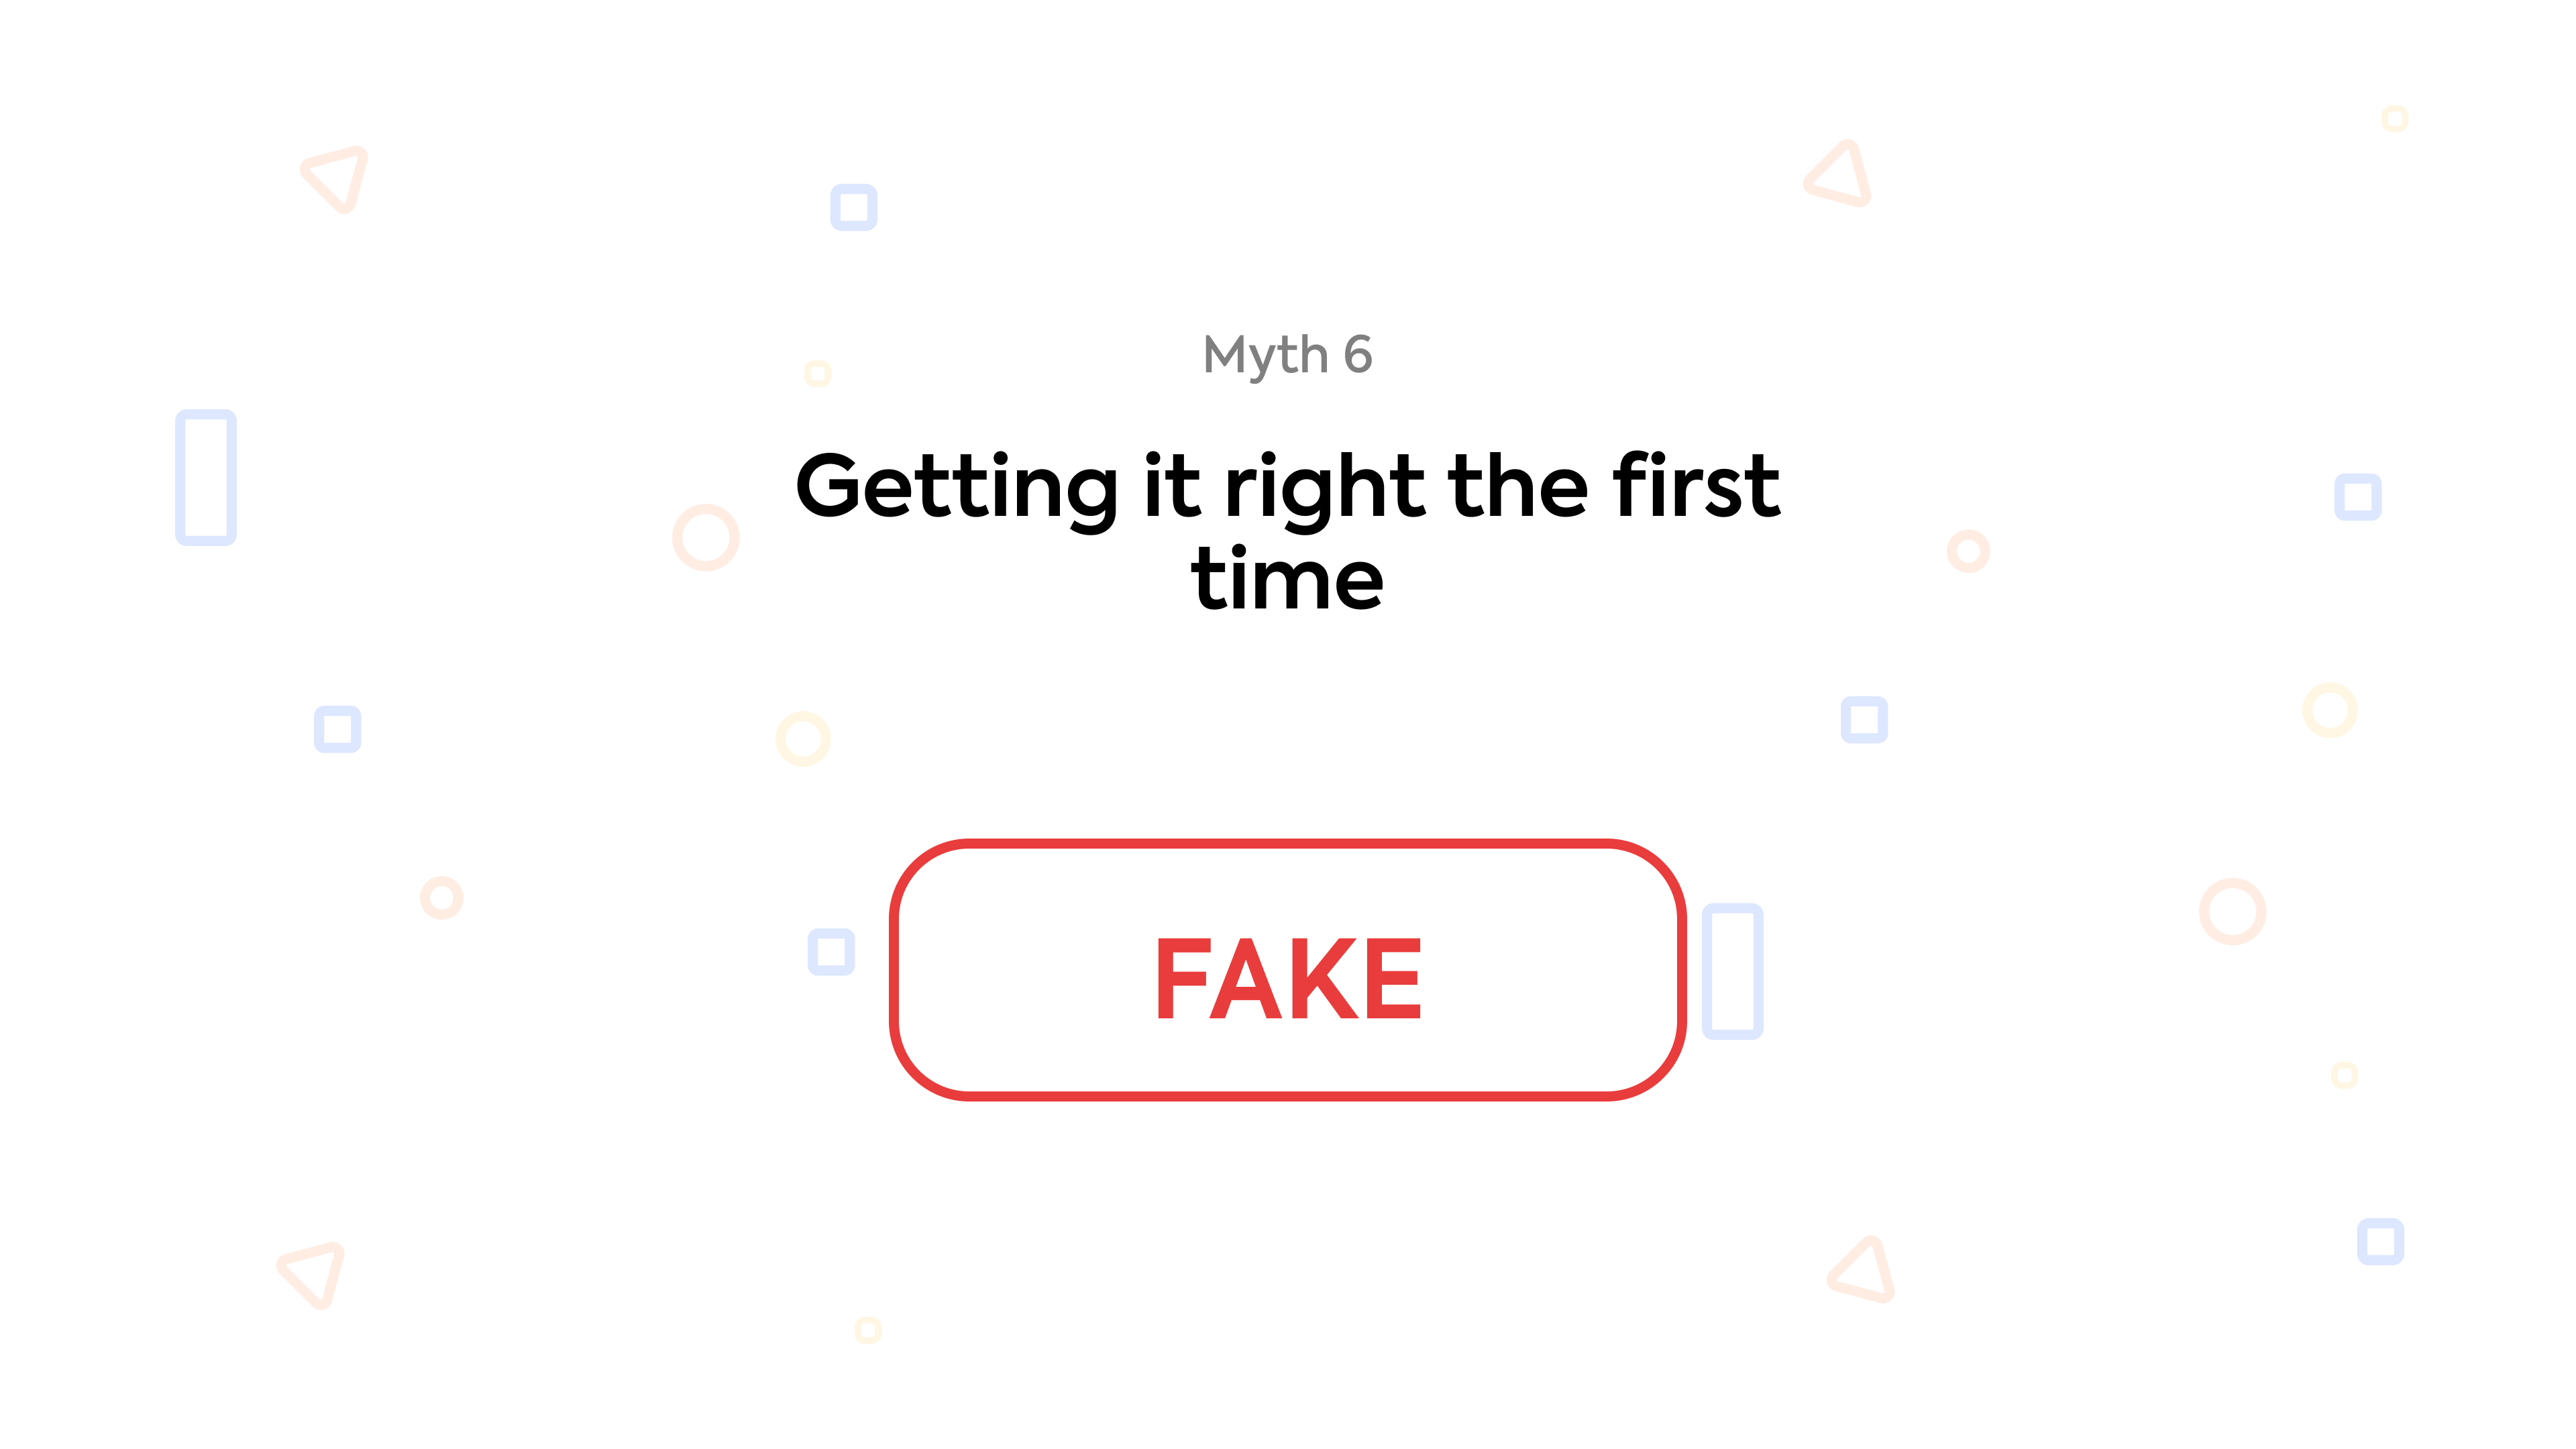 Myth 6: Getting it right the first time